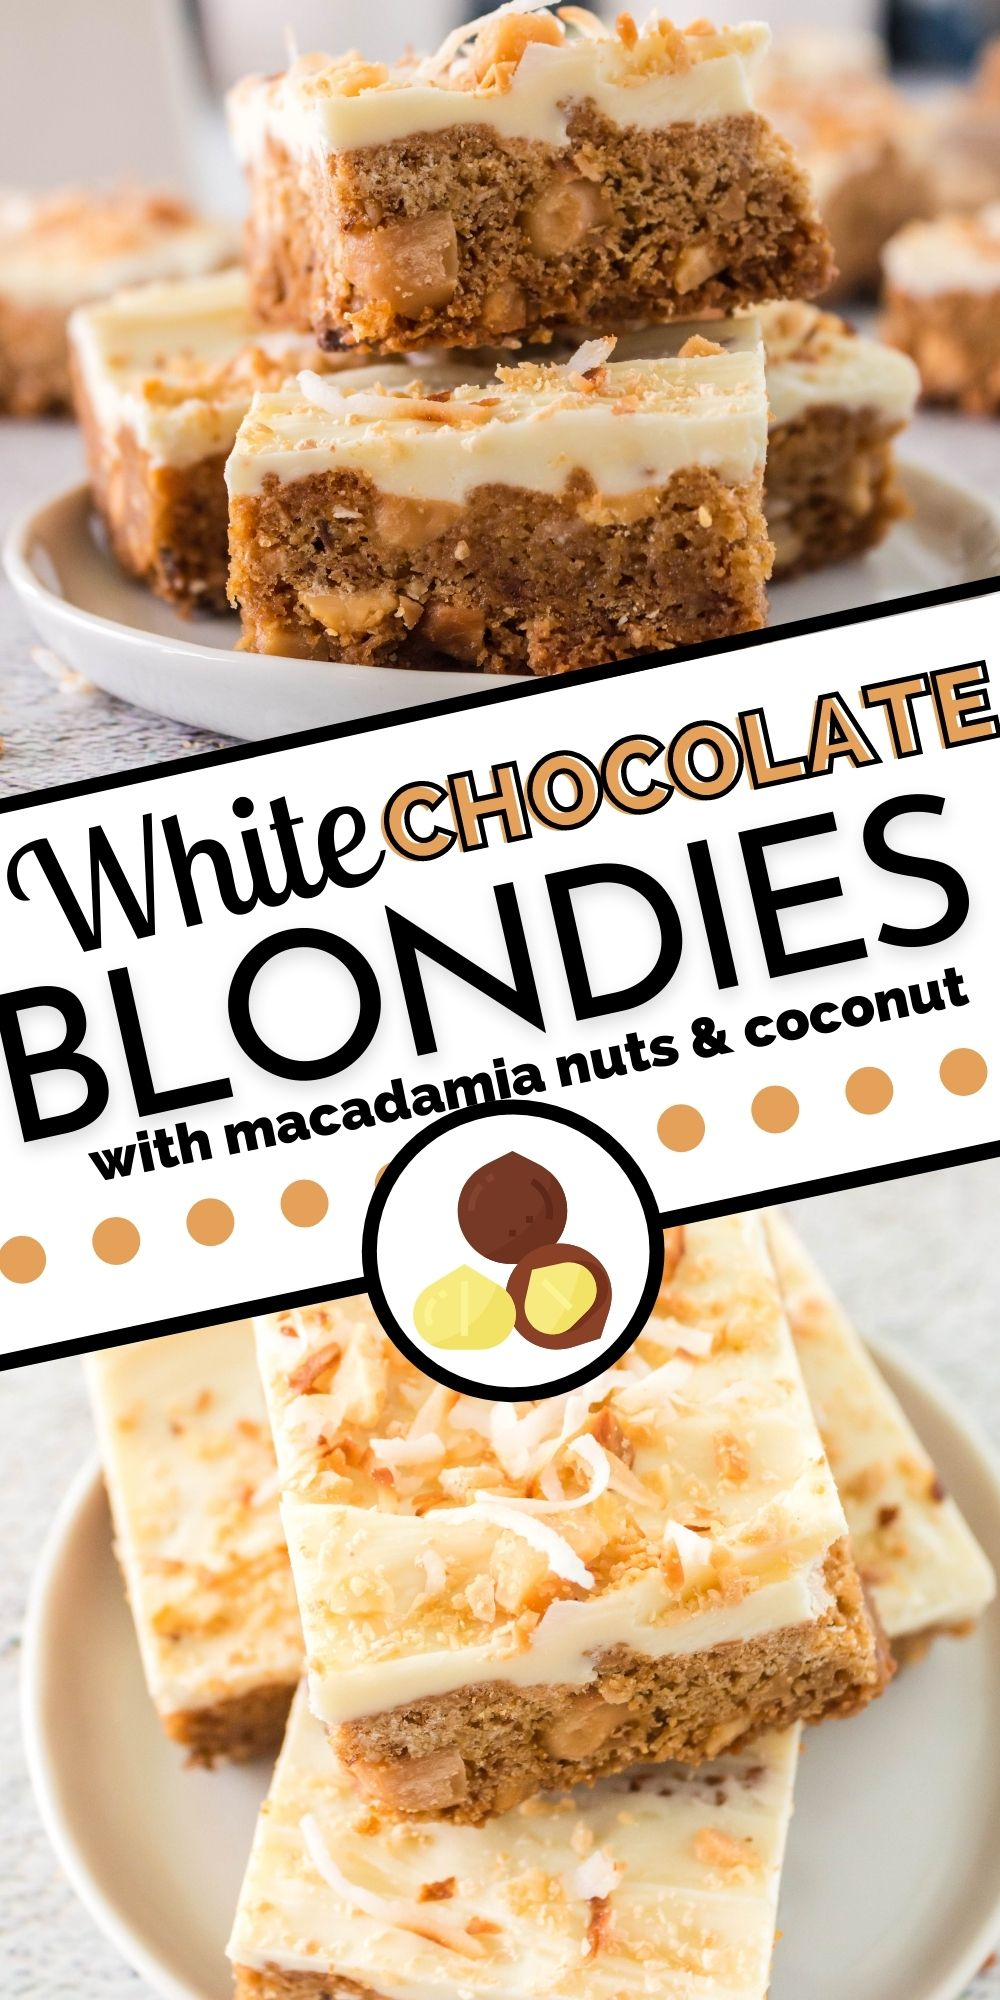 These White Chocolate Blondies with Macadamia Nuts and Coconut are perfect for potlucks and parties, get-togethers, and bake sales. They're bakery-quality, and people go nuts over them! via @foodfolksandfun